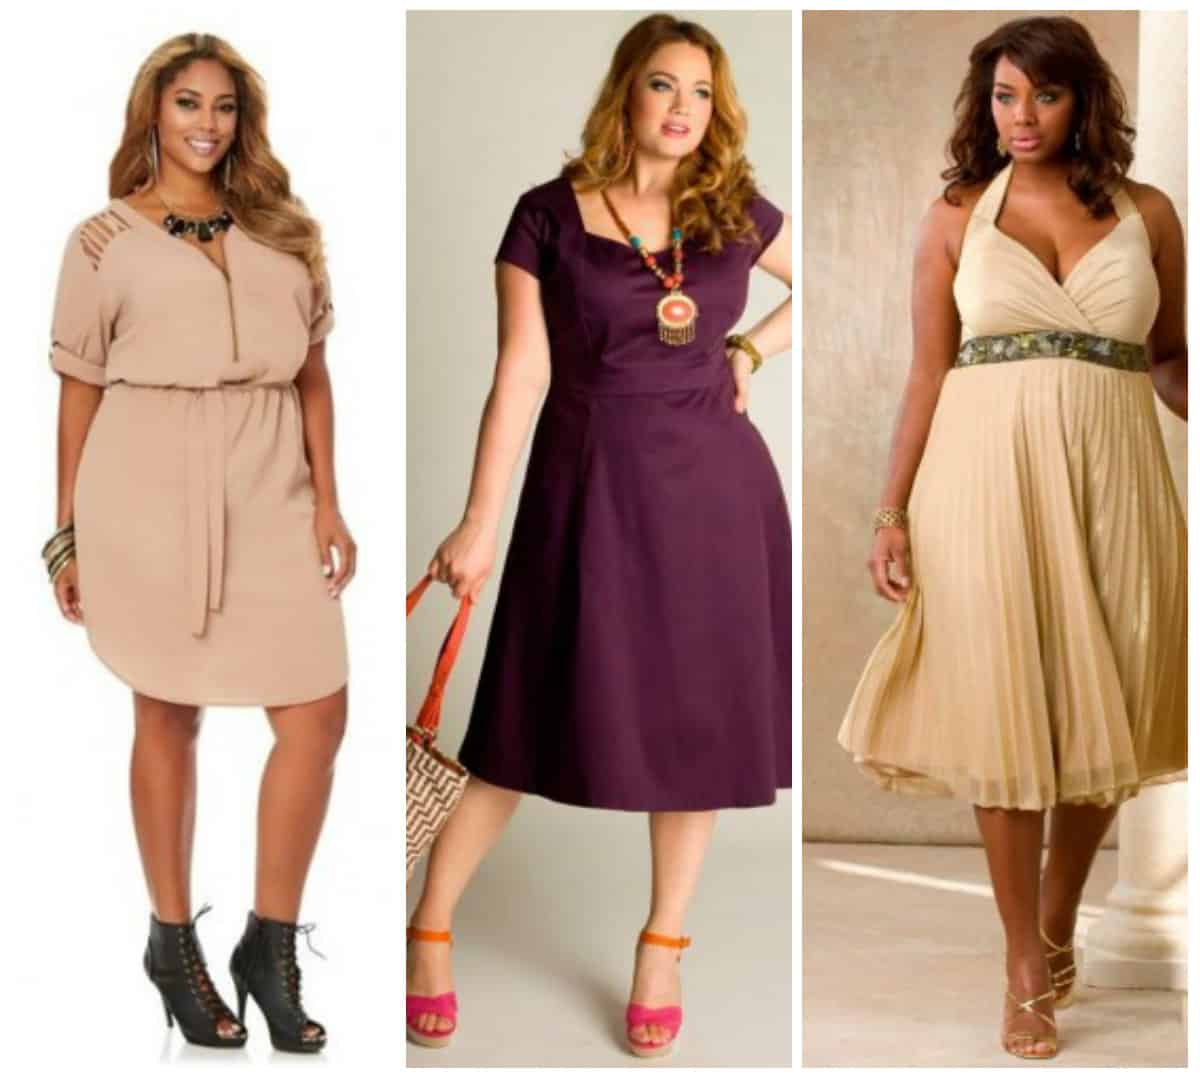 Women's-plus-size-clothing-trends-Spring-Summer-2016-5